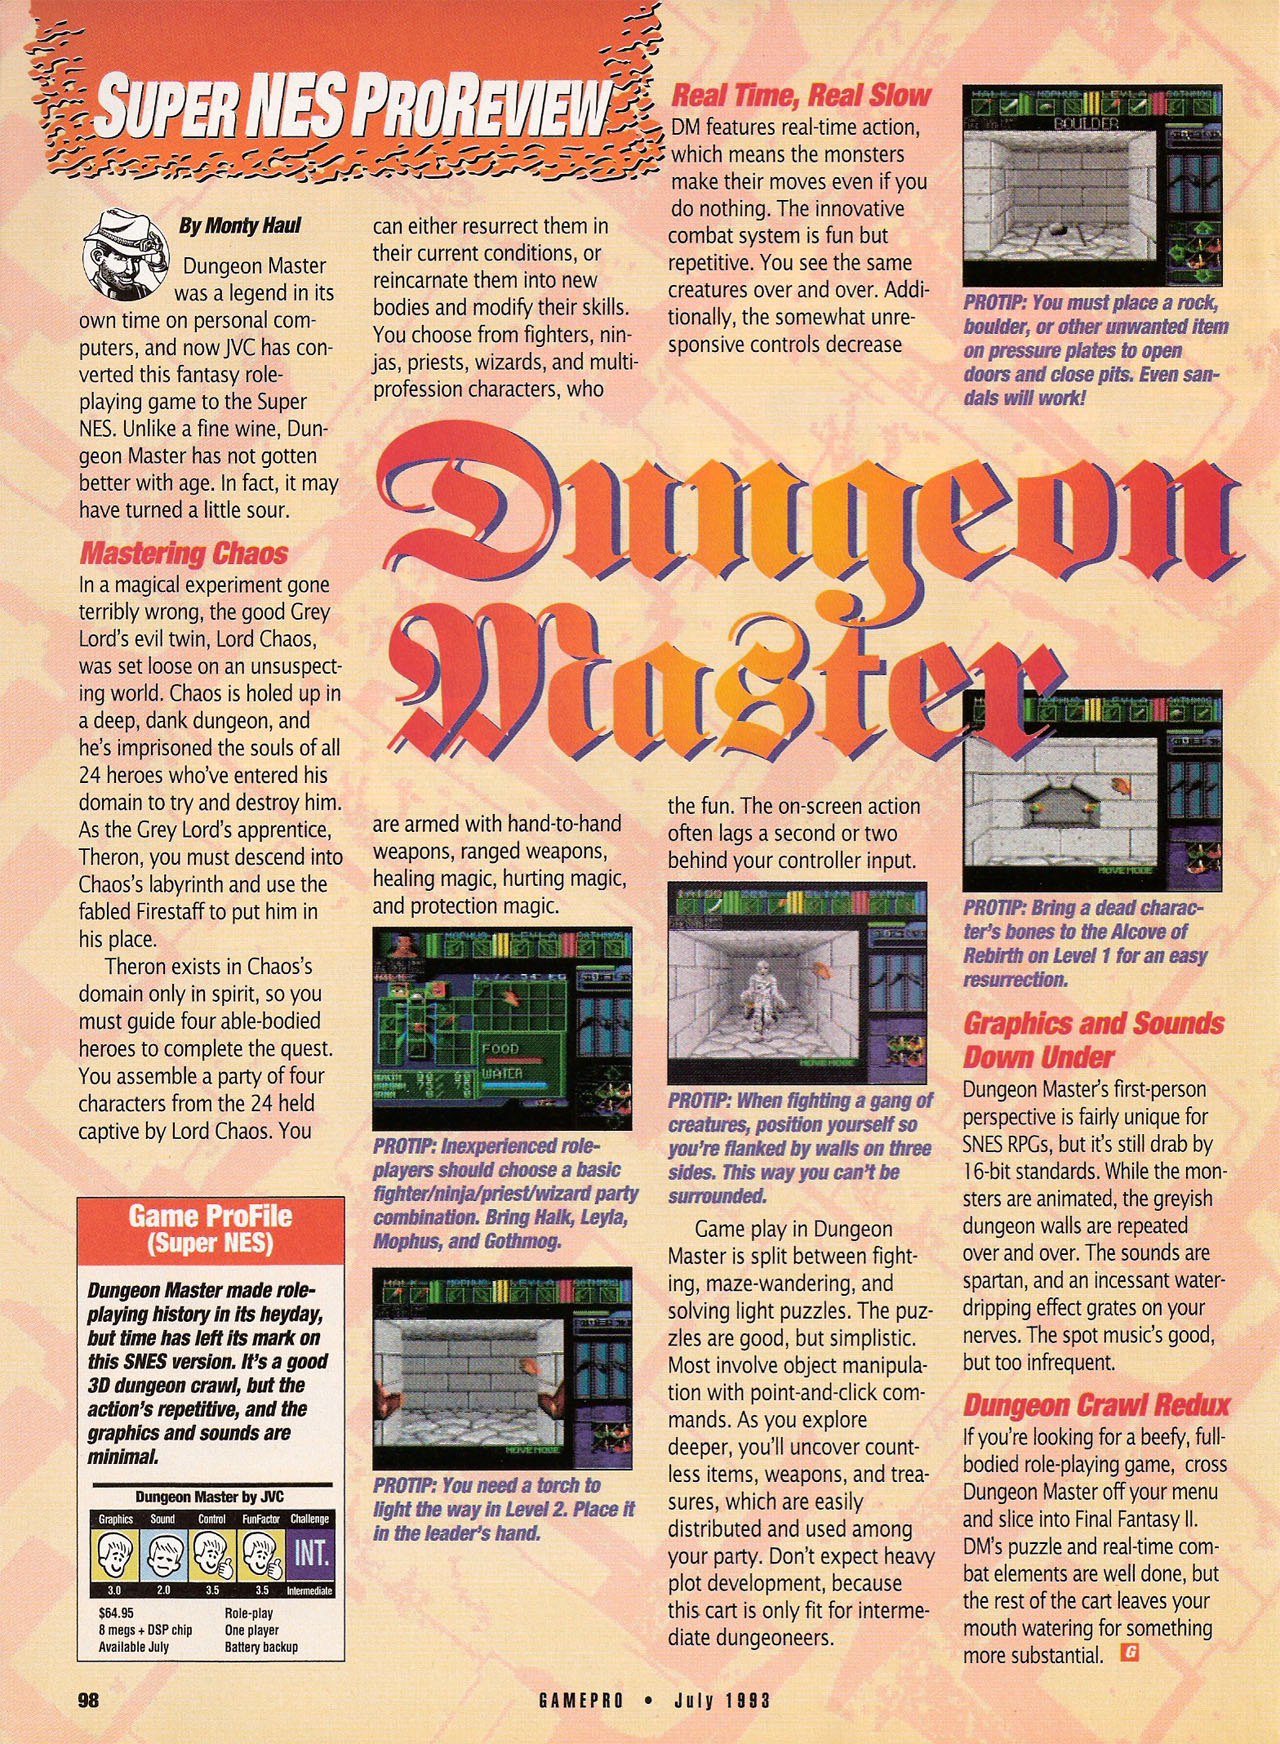 Dungeon Master for Super NES Review published in American magazine 'GamePro', Vol 5 No 7 July 1993, Page 98